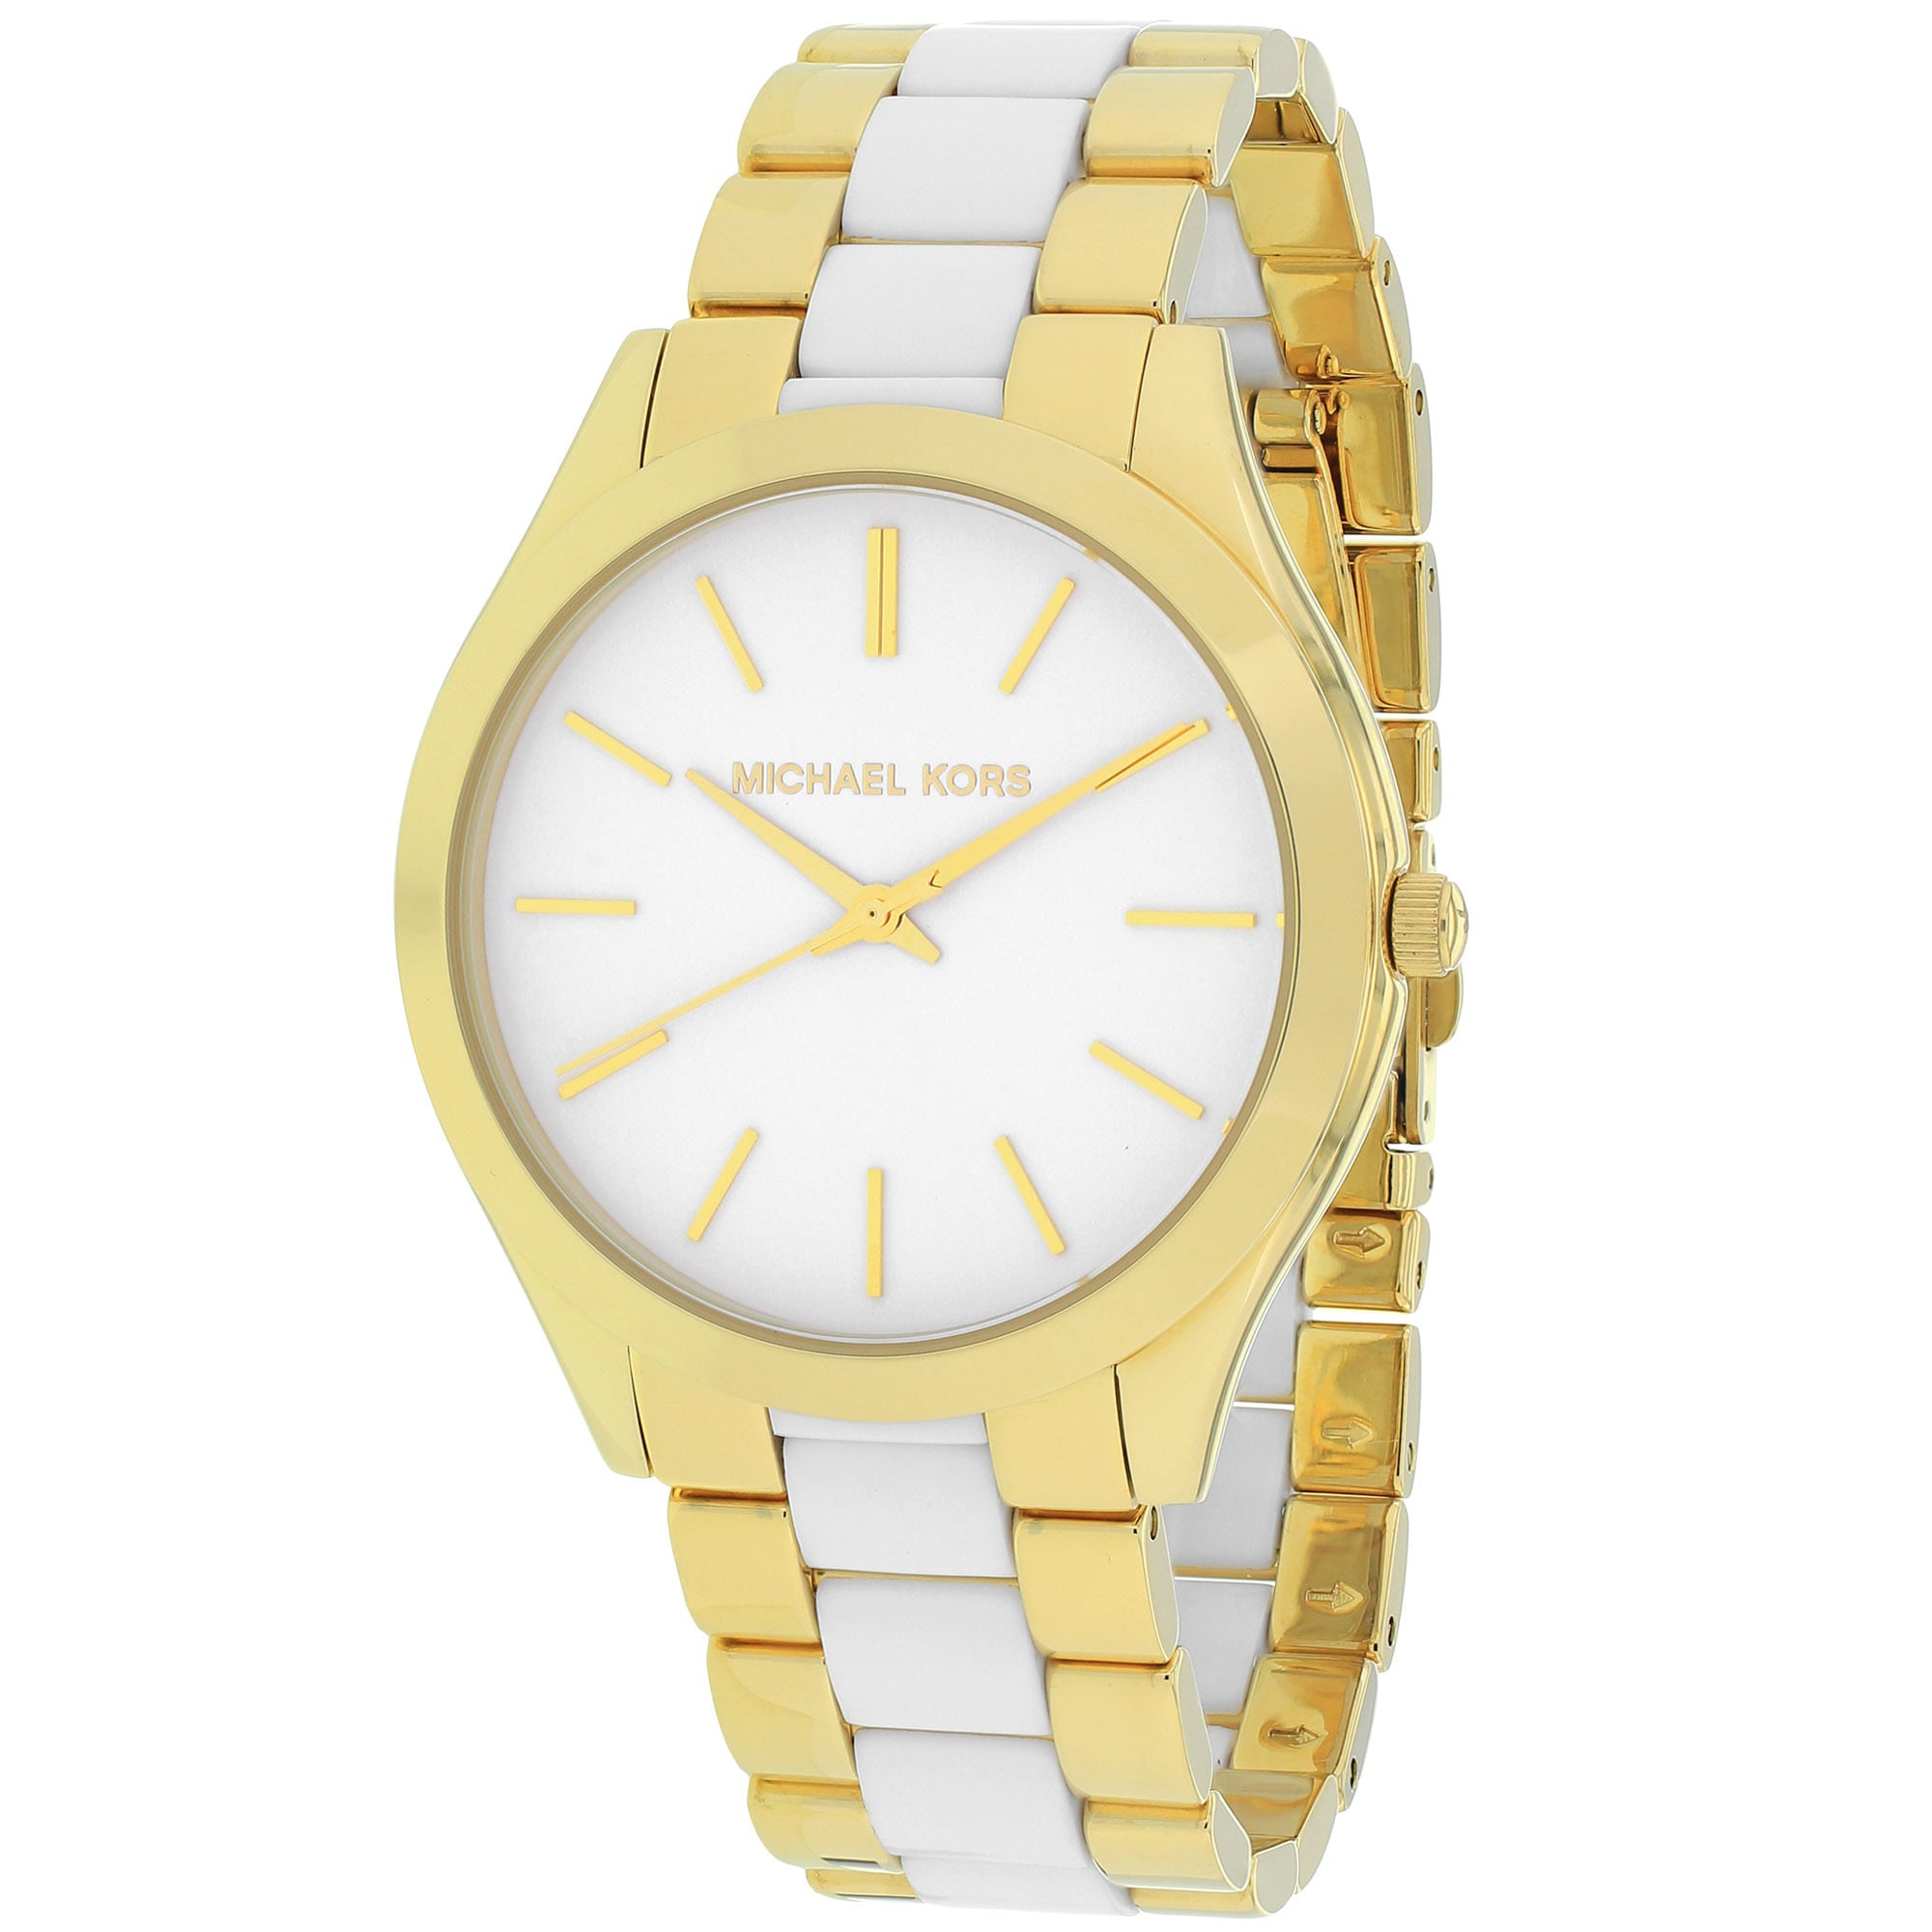 a20ad957c60f Shop Michael Kors Women s MK4295  Slim Runway  Two tone Stainless Steel  Watch - Free Shipping Today - Overstock - 10018749